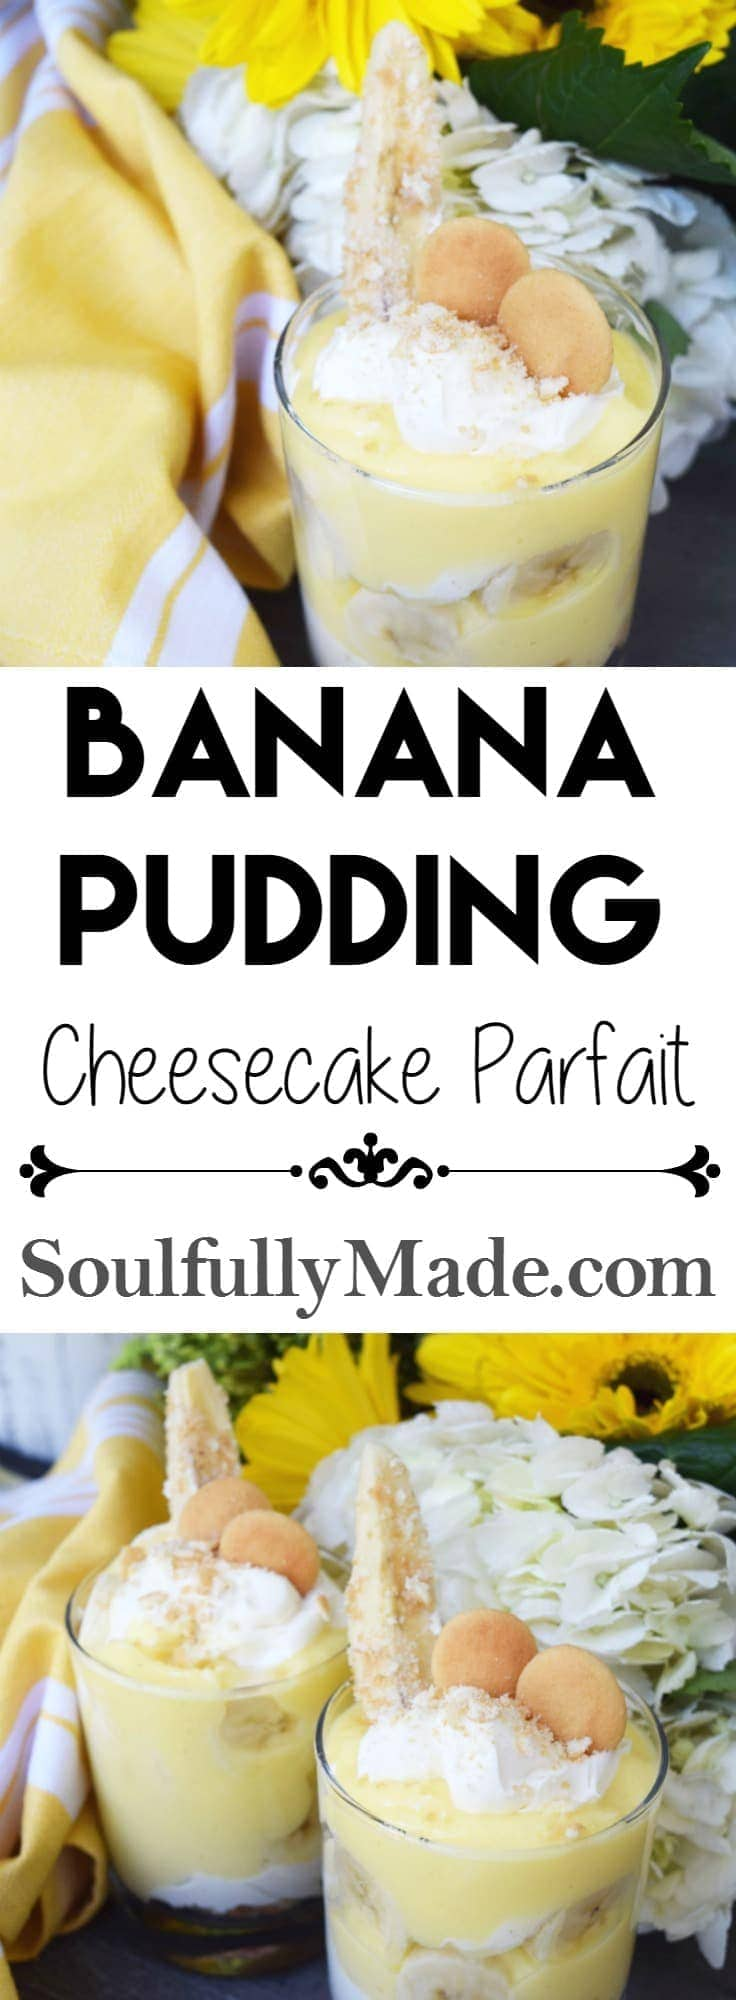 Banana Pudding Cheesecake Parfait Pin